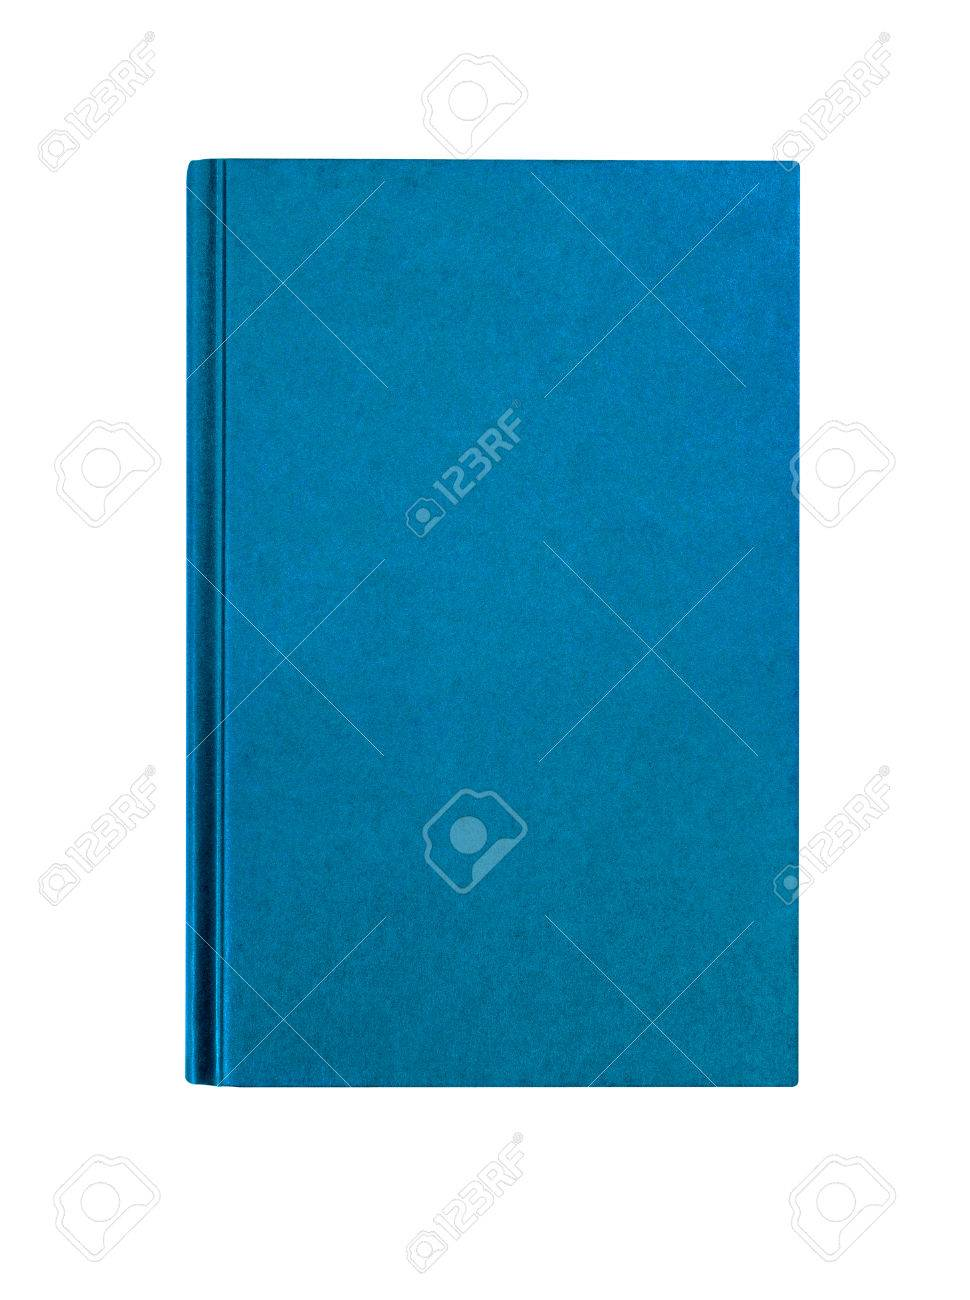 Light blue plain hardcover book front cover upright vertical isolated on white - 52422930